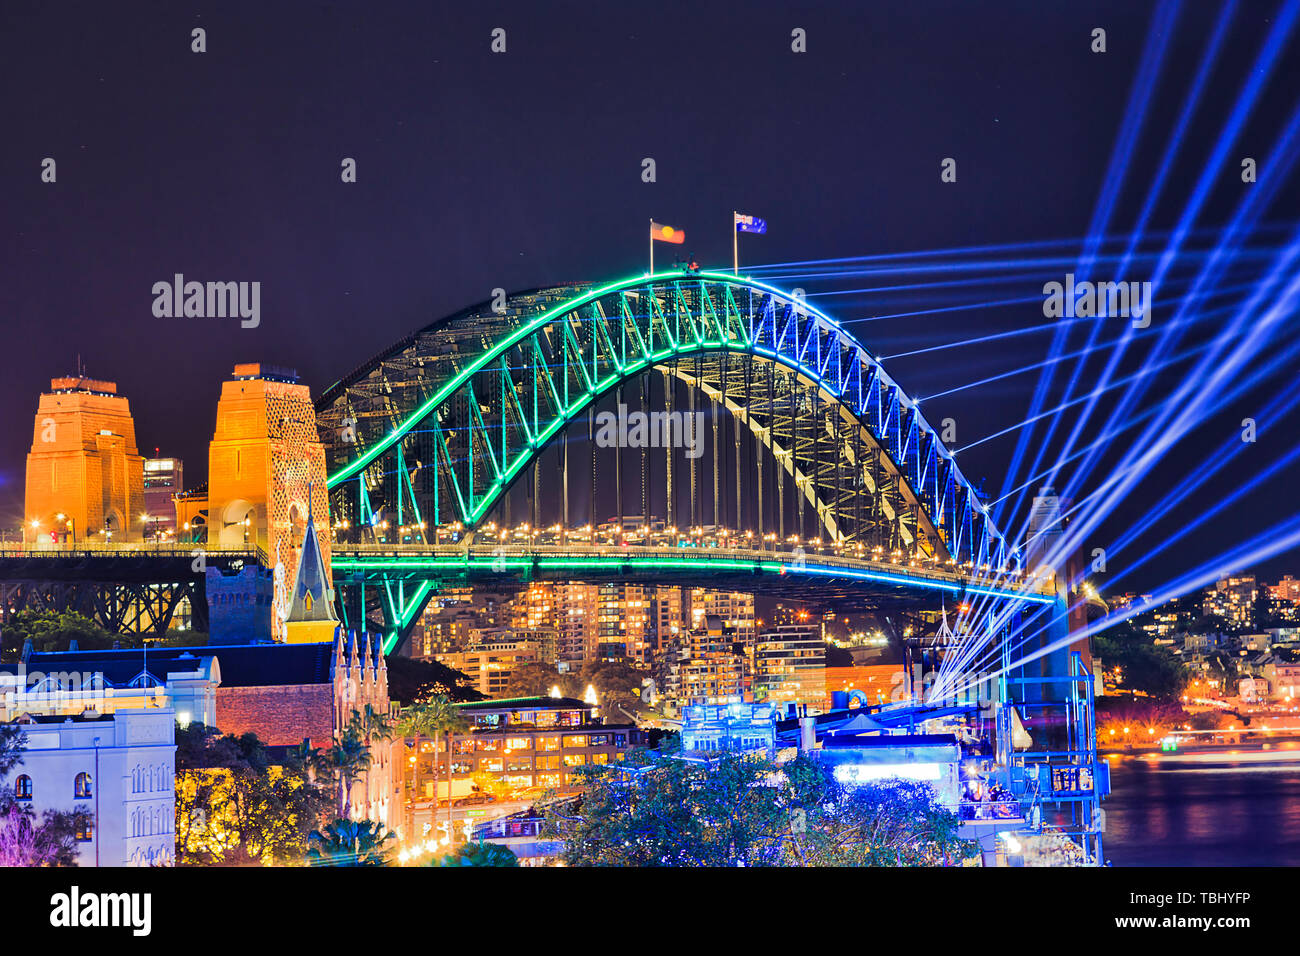 Steel arch of the Sydney Harbour bridge with bright illumination and laser beams in dark night sky over harbour during Vivid Sydney light show. - Stock Image